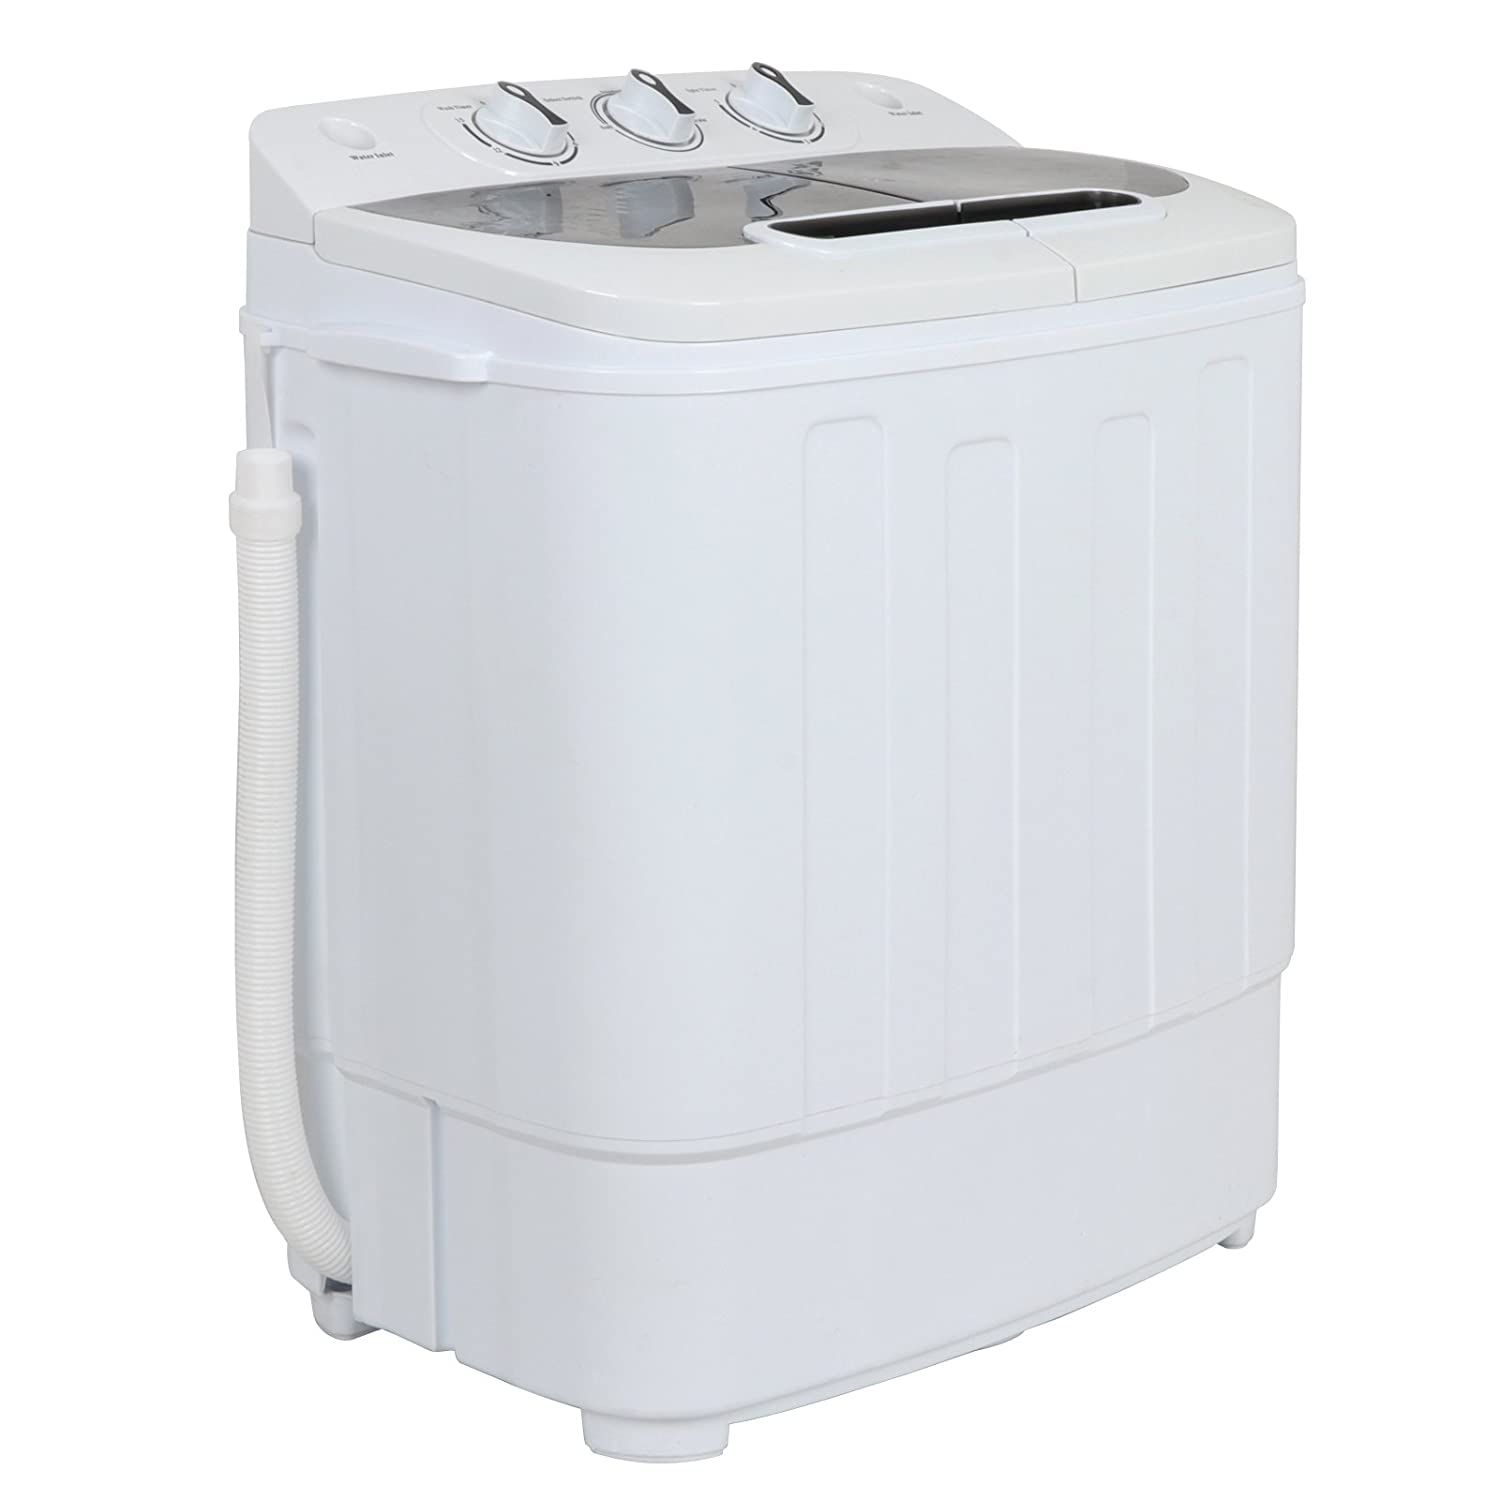 ZENSTYLE Portable Mini Twin Tub Washing machine w/Spin Cycle Dryer Compact Built-in Gravity Drain 13 lbs Capacity 2-in-1 Washer/Spinner w/Hose for Dorm College Room Apartment RV's Camping Traveling